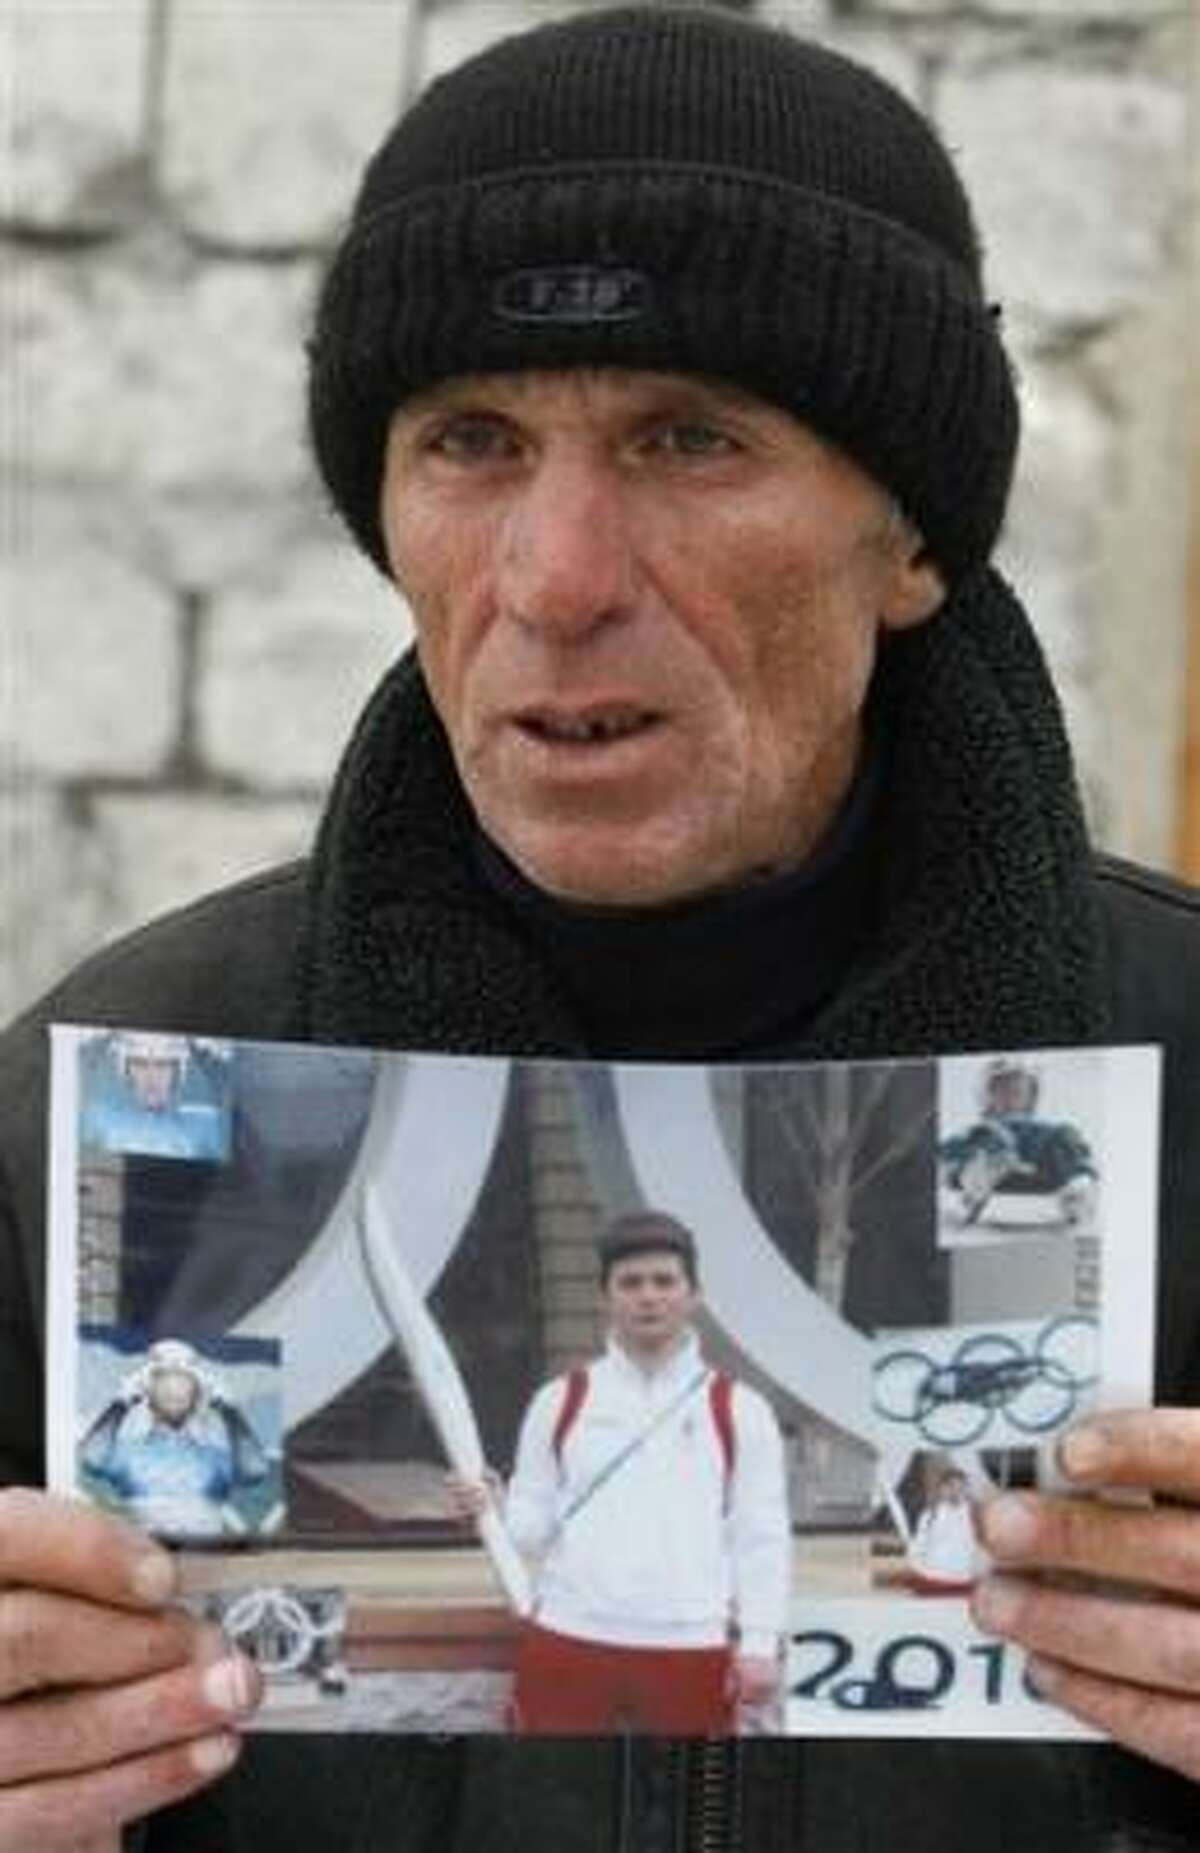 David Kumaritashvili, father of Nodar Kumaritashvili, the Georgian luger killed on an Olympic training run, shows a photo his son e-mailed from Vancouver, British Columbia. The 21-year-old luger died during Friday practice when he lost control of his sled and slammed into a trackside pole.